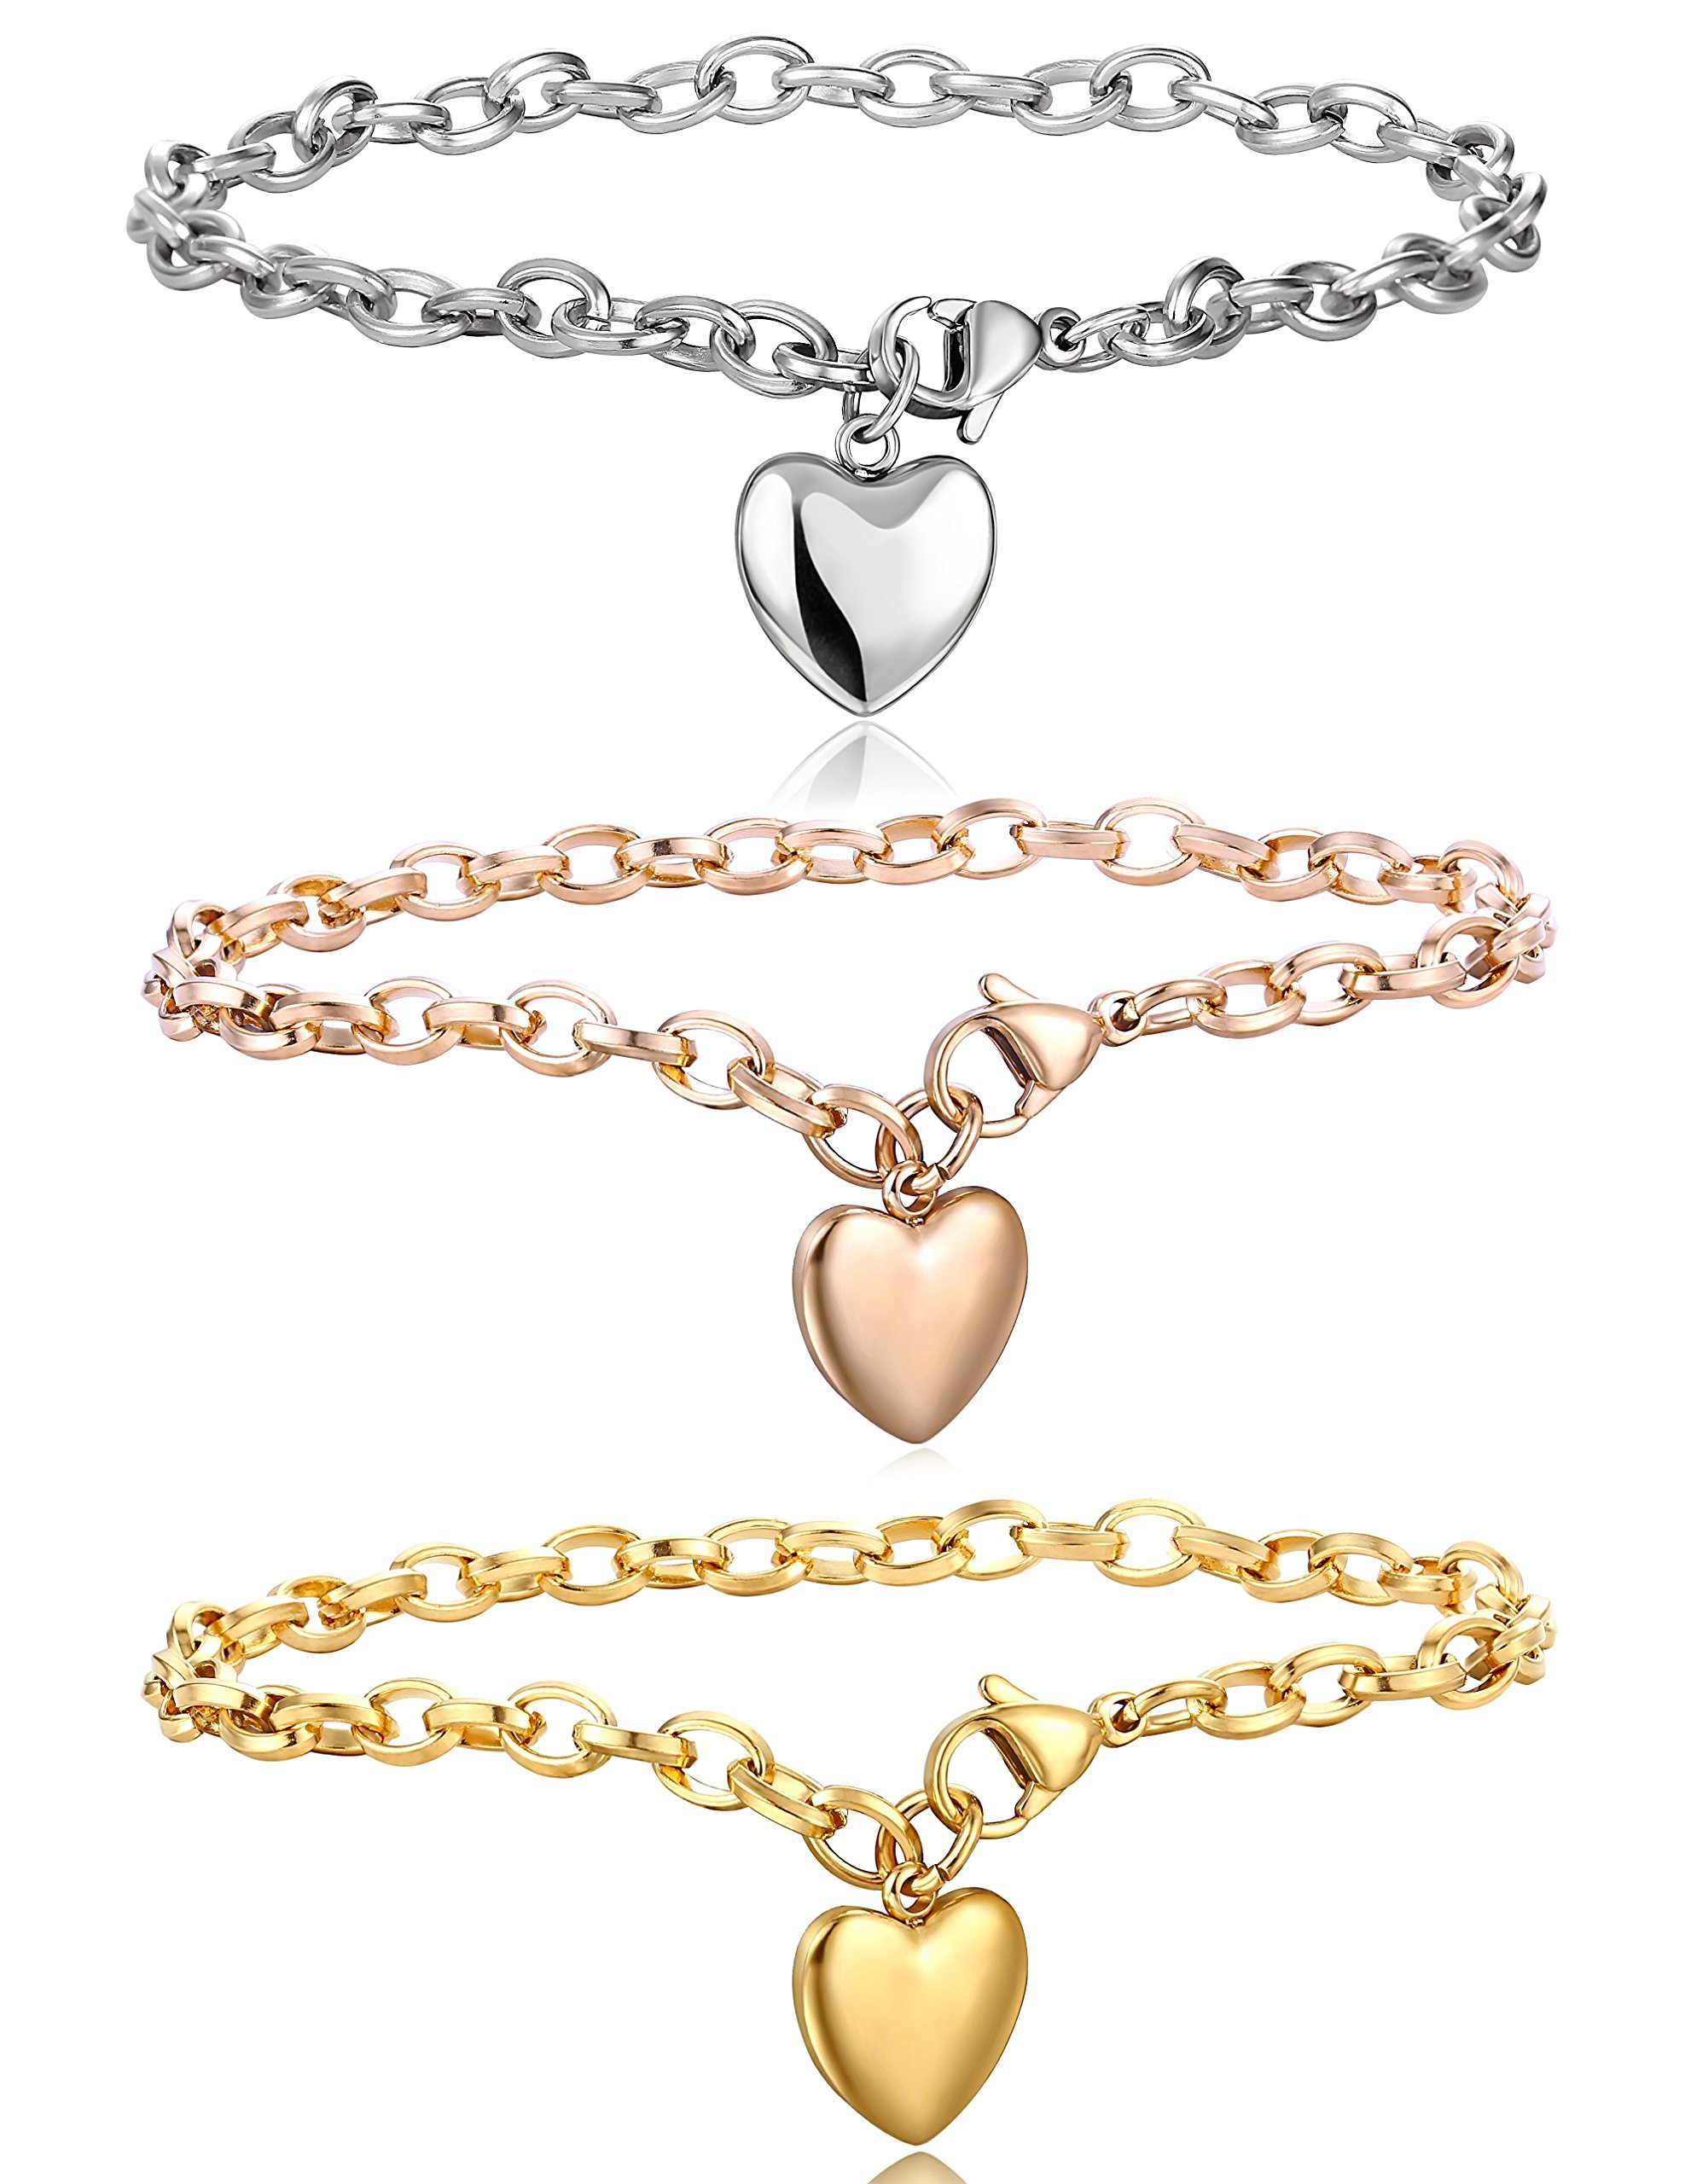 Jstyle Jewelry Women's Stainless Steel Chain Bracelet with Heart Charm,7.48'' 3 Pcs